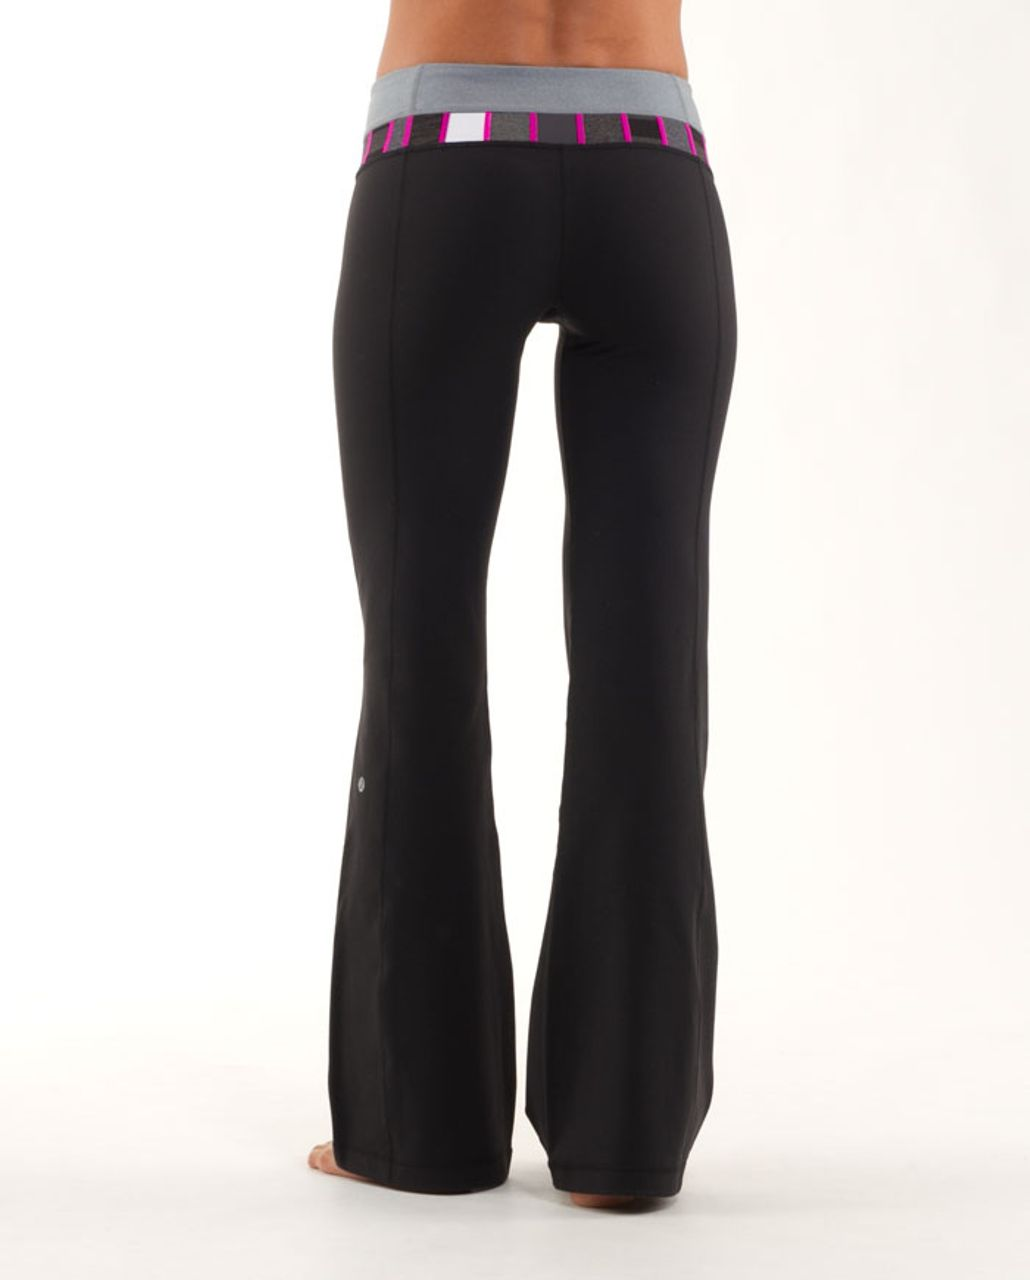 Lululemon Groove Pant (Tall) - Black /  Heathered Blurred Grey /  Quilting Winter 18